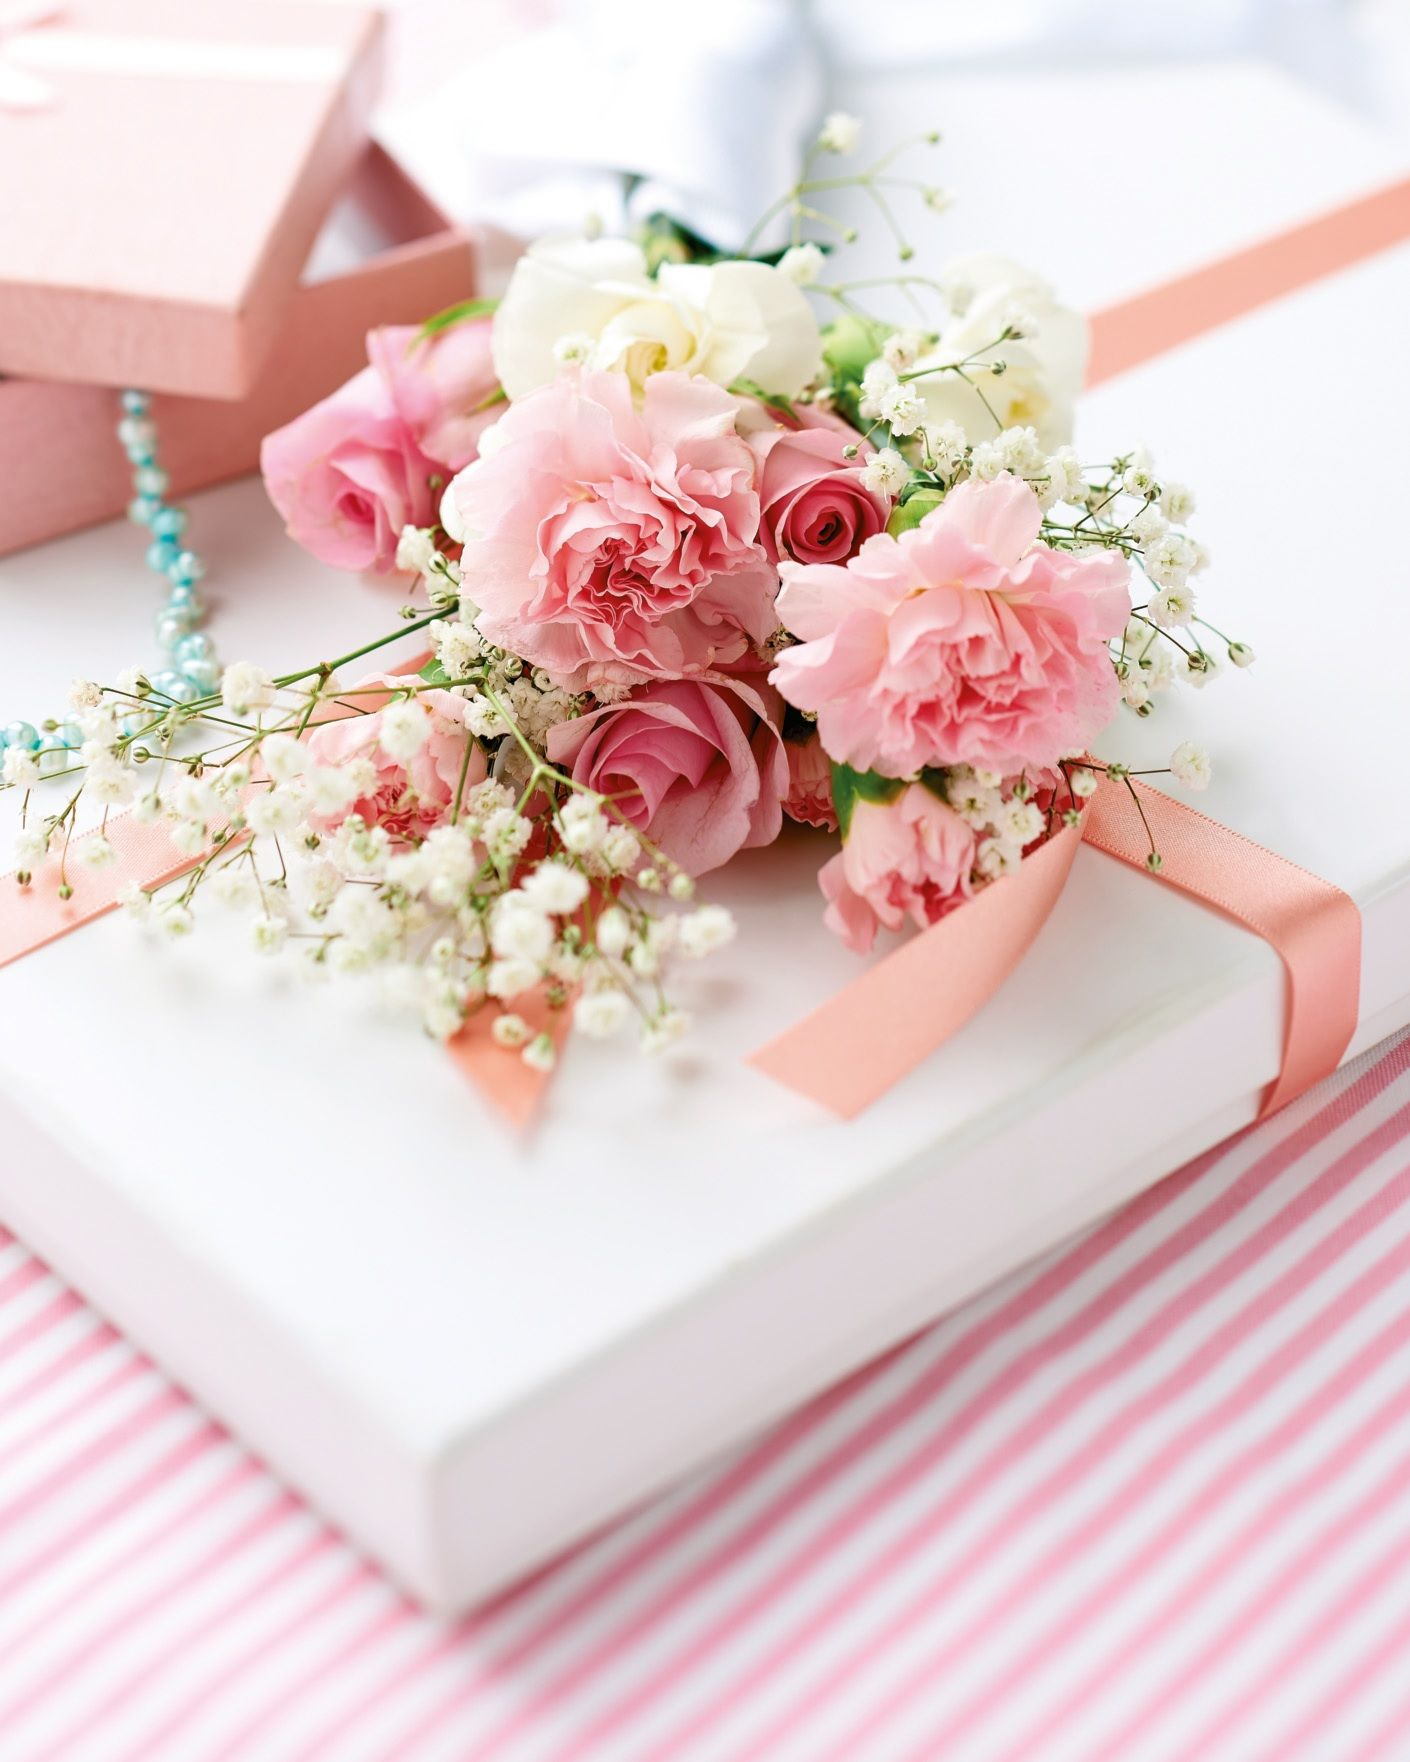 Envolver regalos bonitos flower bouquets gift flowers and wraps pretty wrapped gift with beautiful pink flowers negle Choice Image